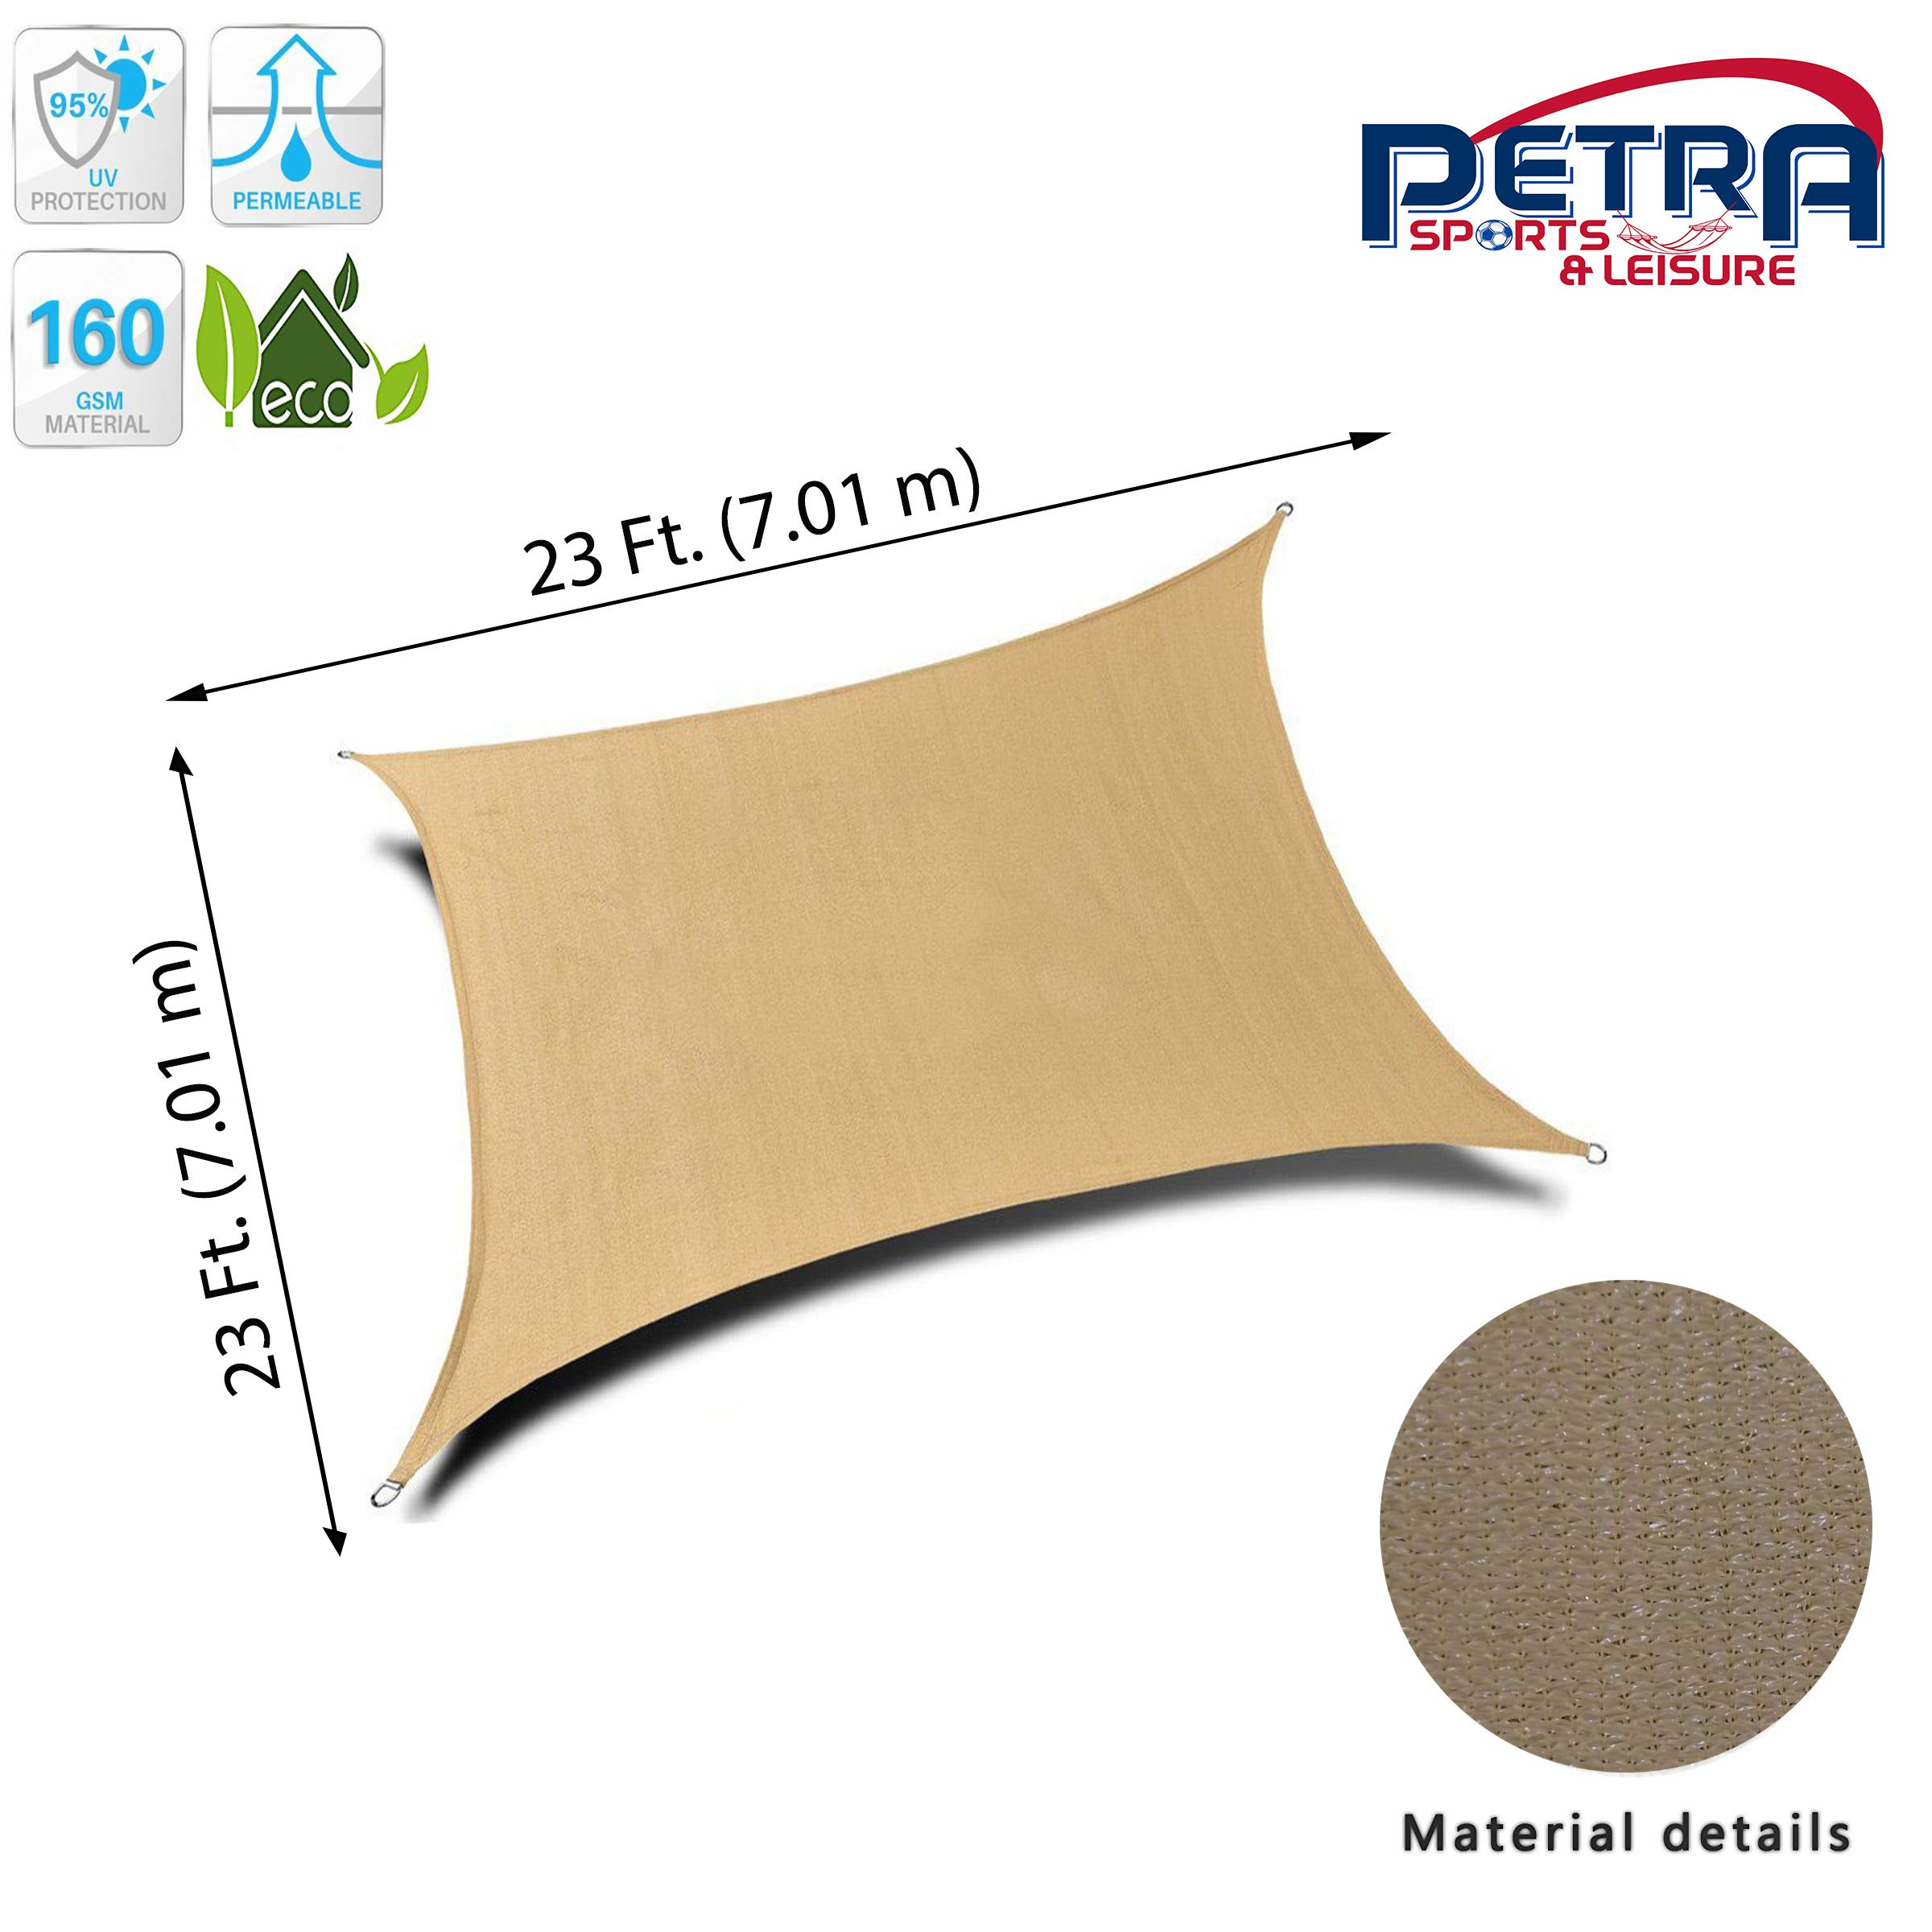 Petra's 23 Ft. X 23 Ft. Square Sun Sail Shade. Durable Woven Outdoor Patio Fabric w/Up To 90% UV Protection. 23x23 Foot. (Desert Sand)